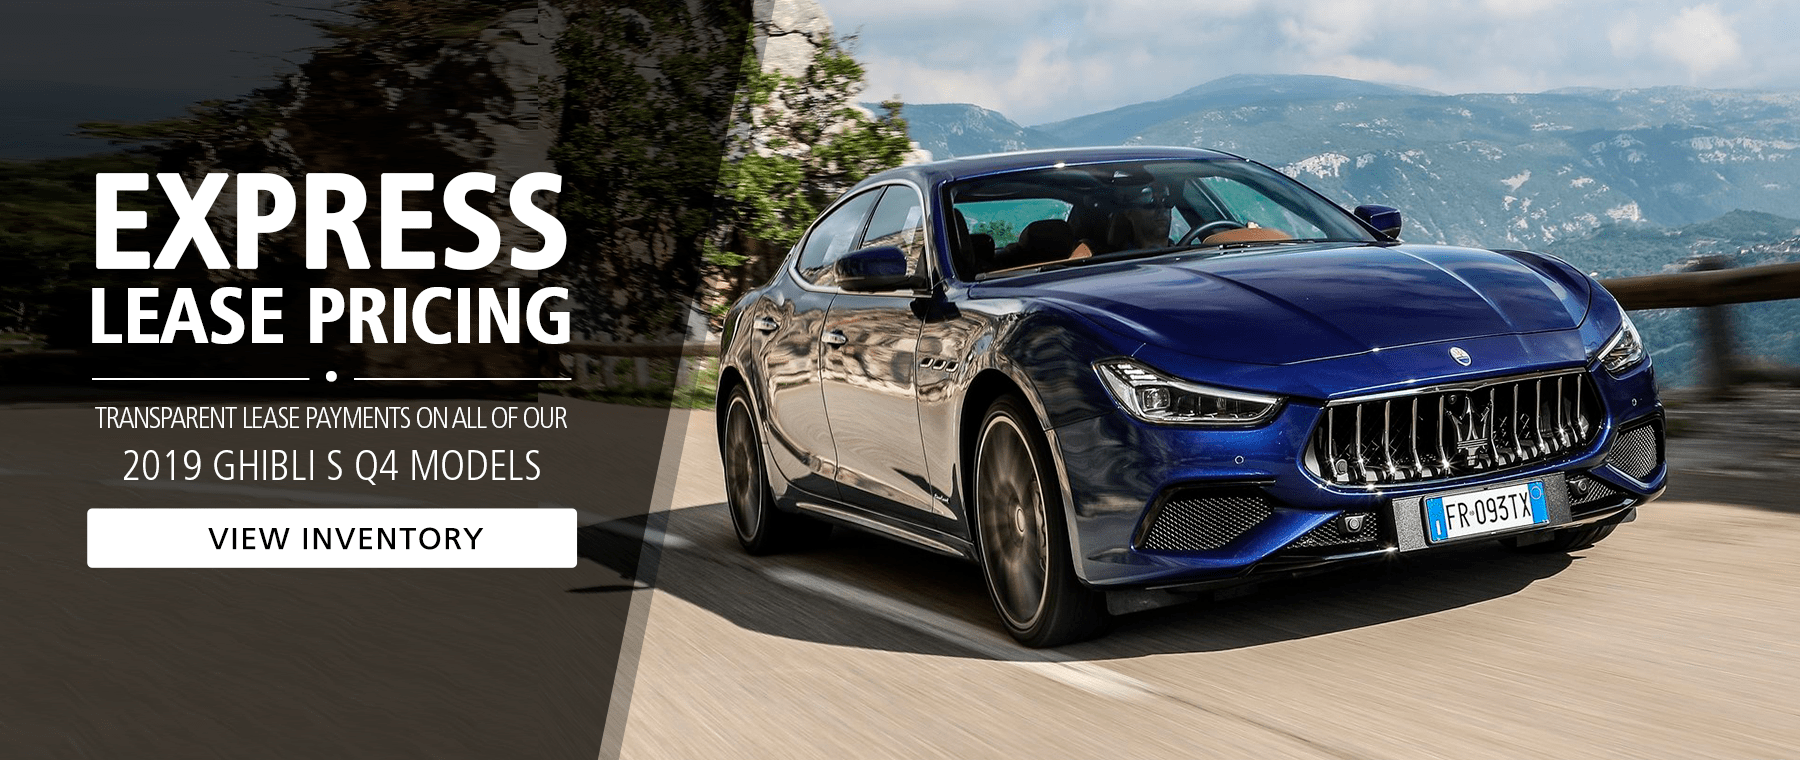 Special Lease Pricing - Maserati Ghibli